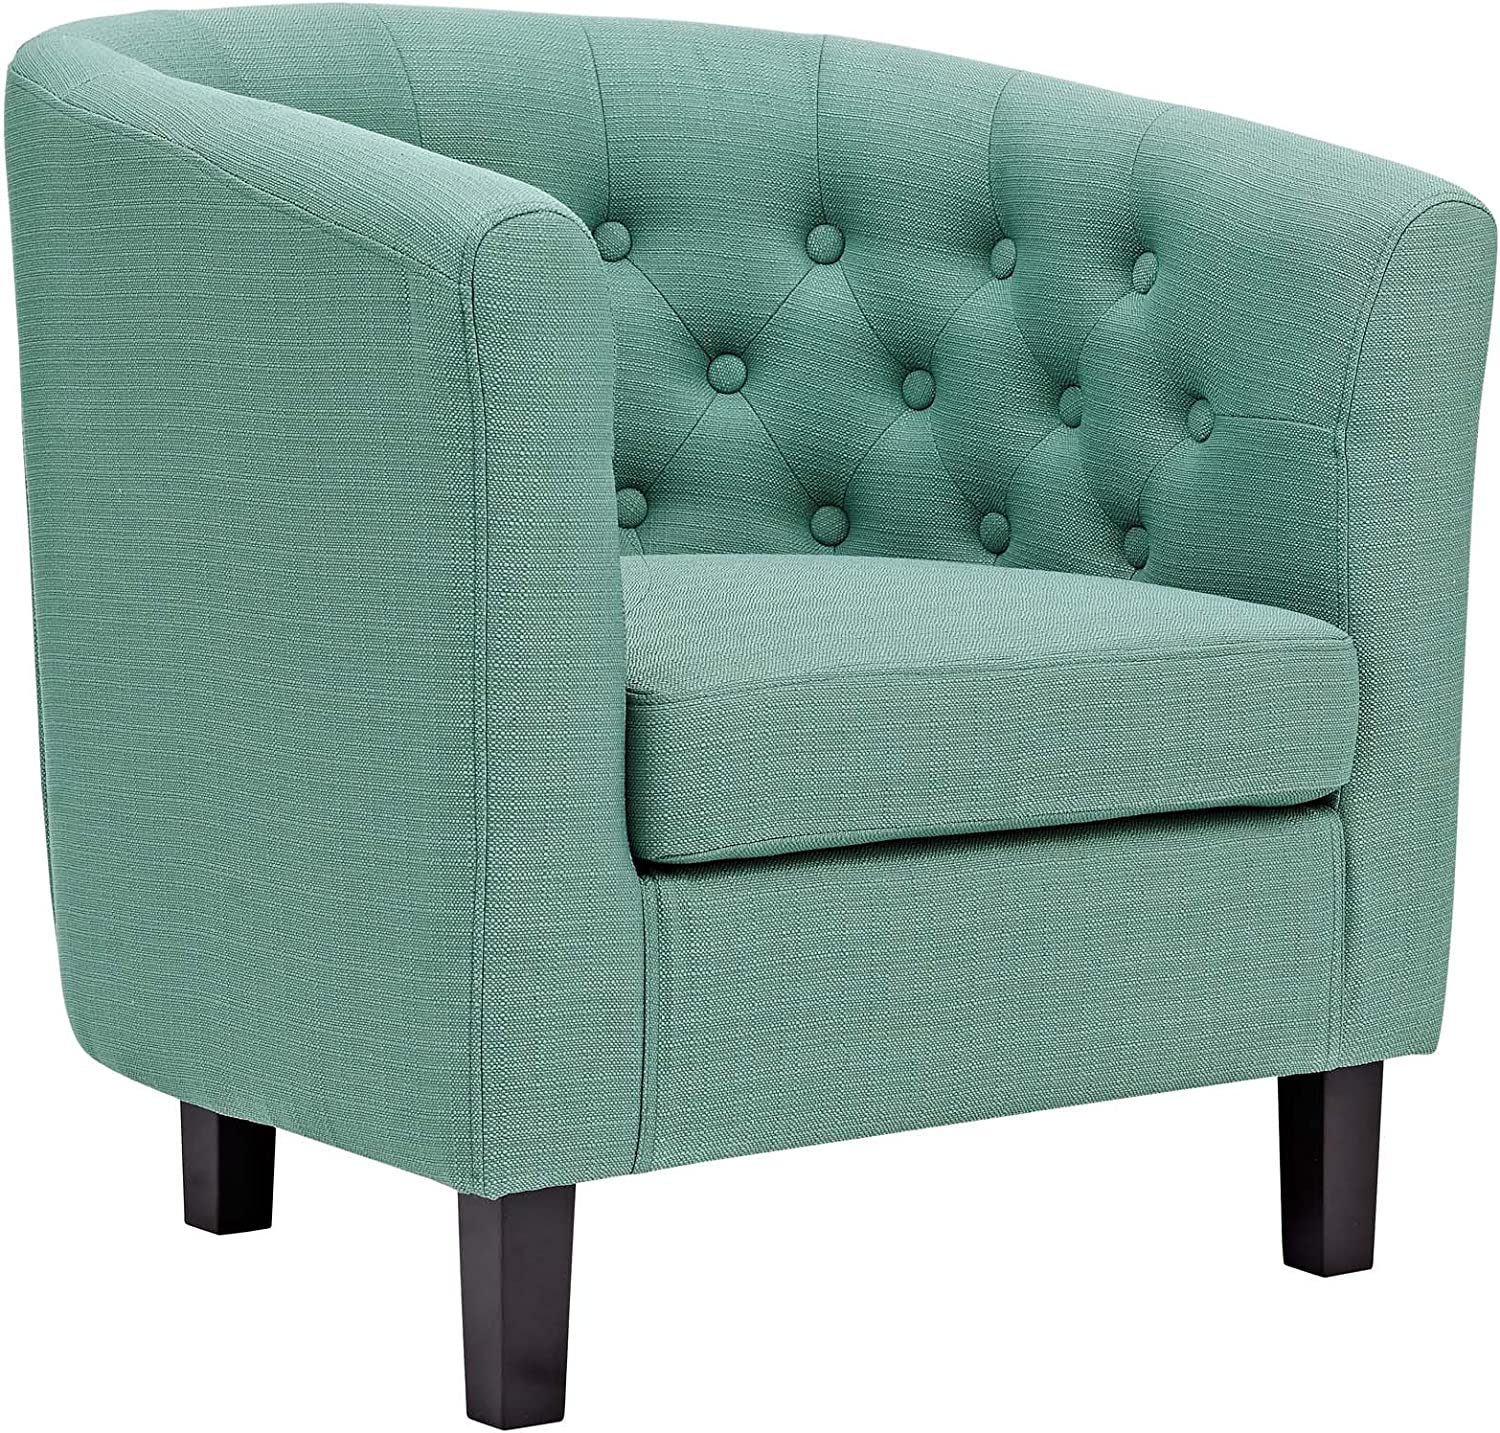 Modway Prospect Upholstered Fabric Contemporary Modern Accent Arm Chair in Laguna